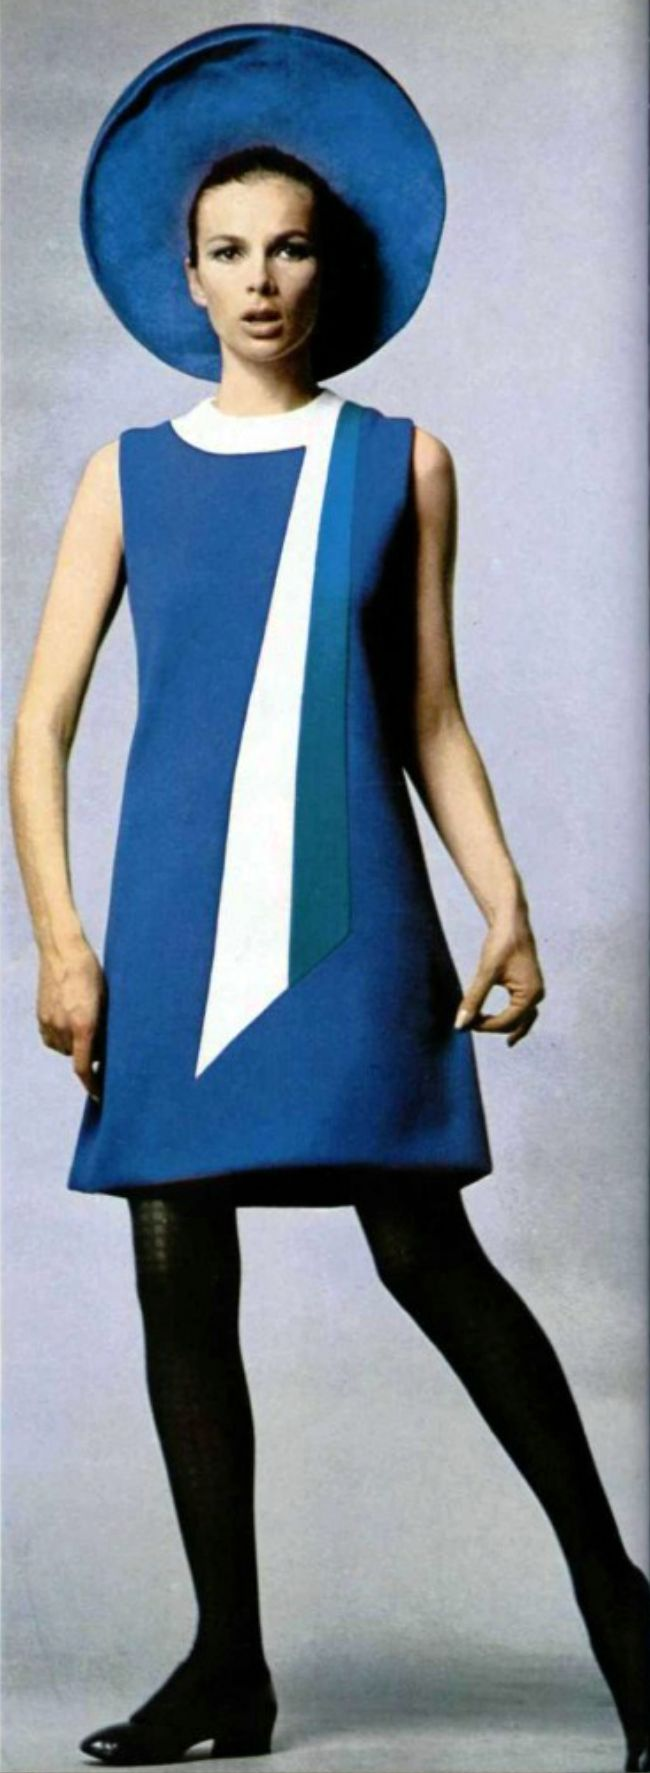 Blue dress outfit magazine